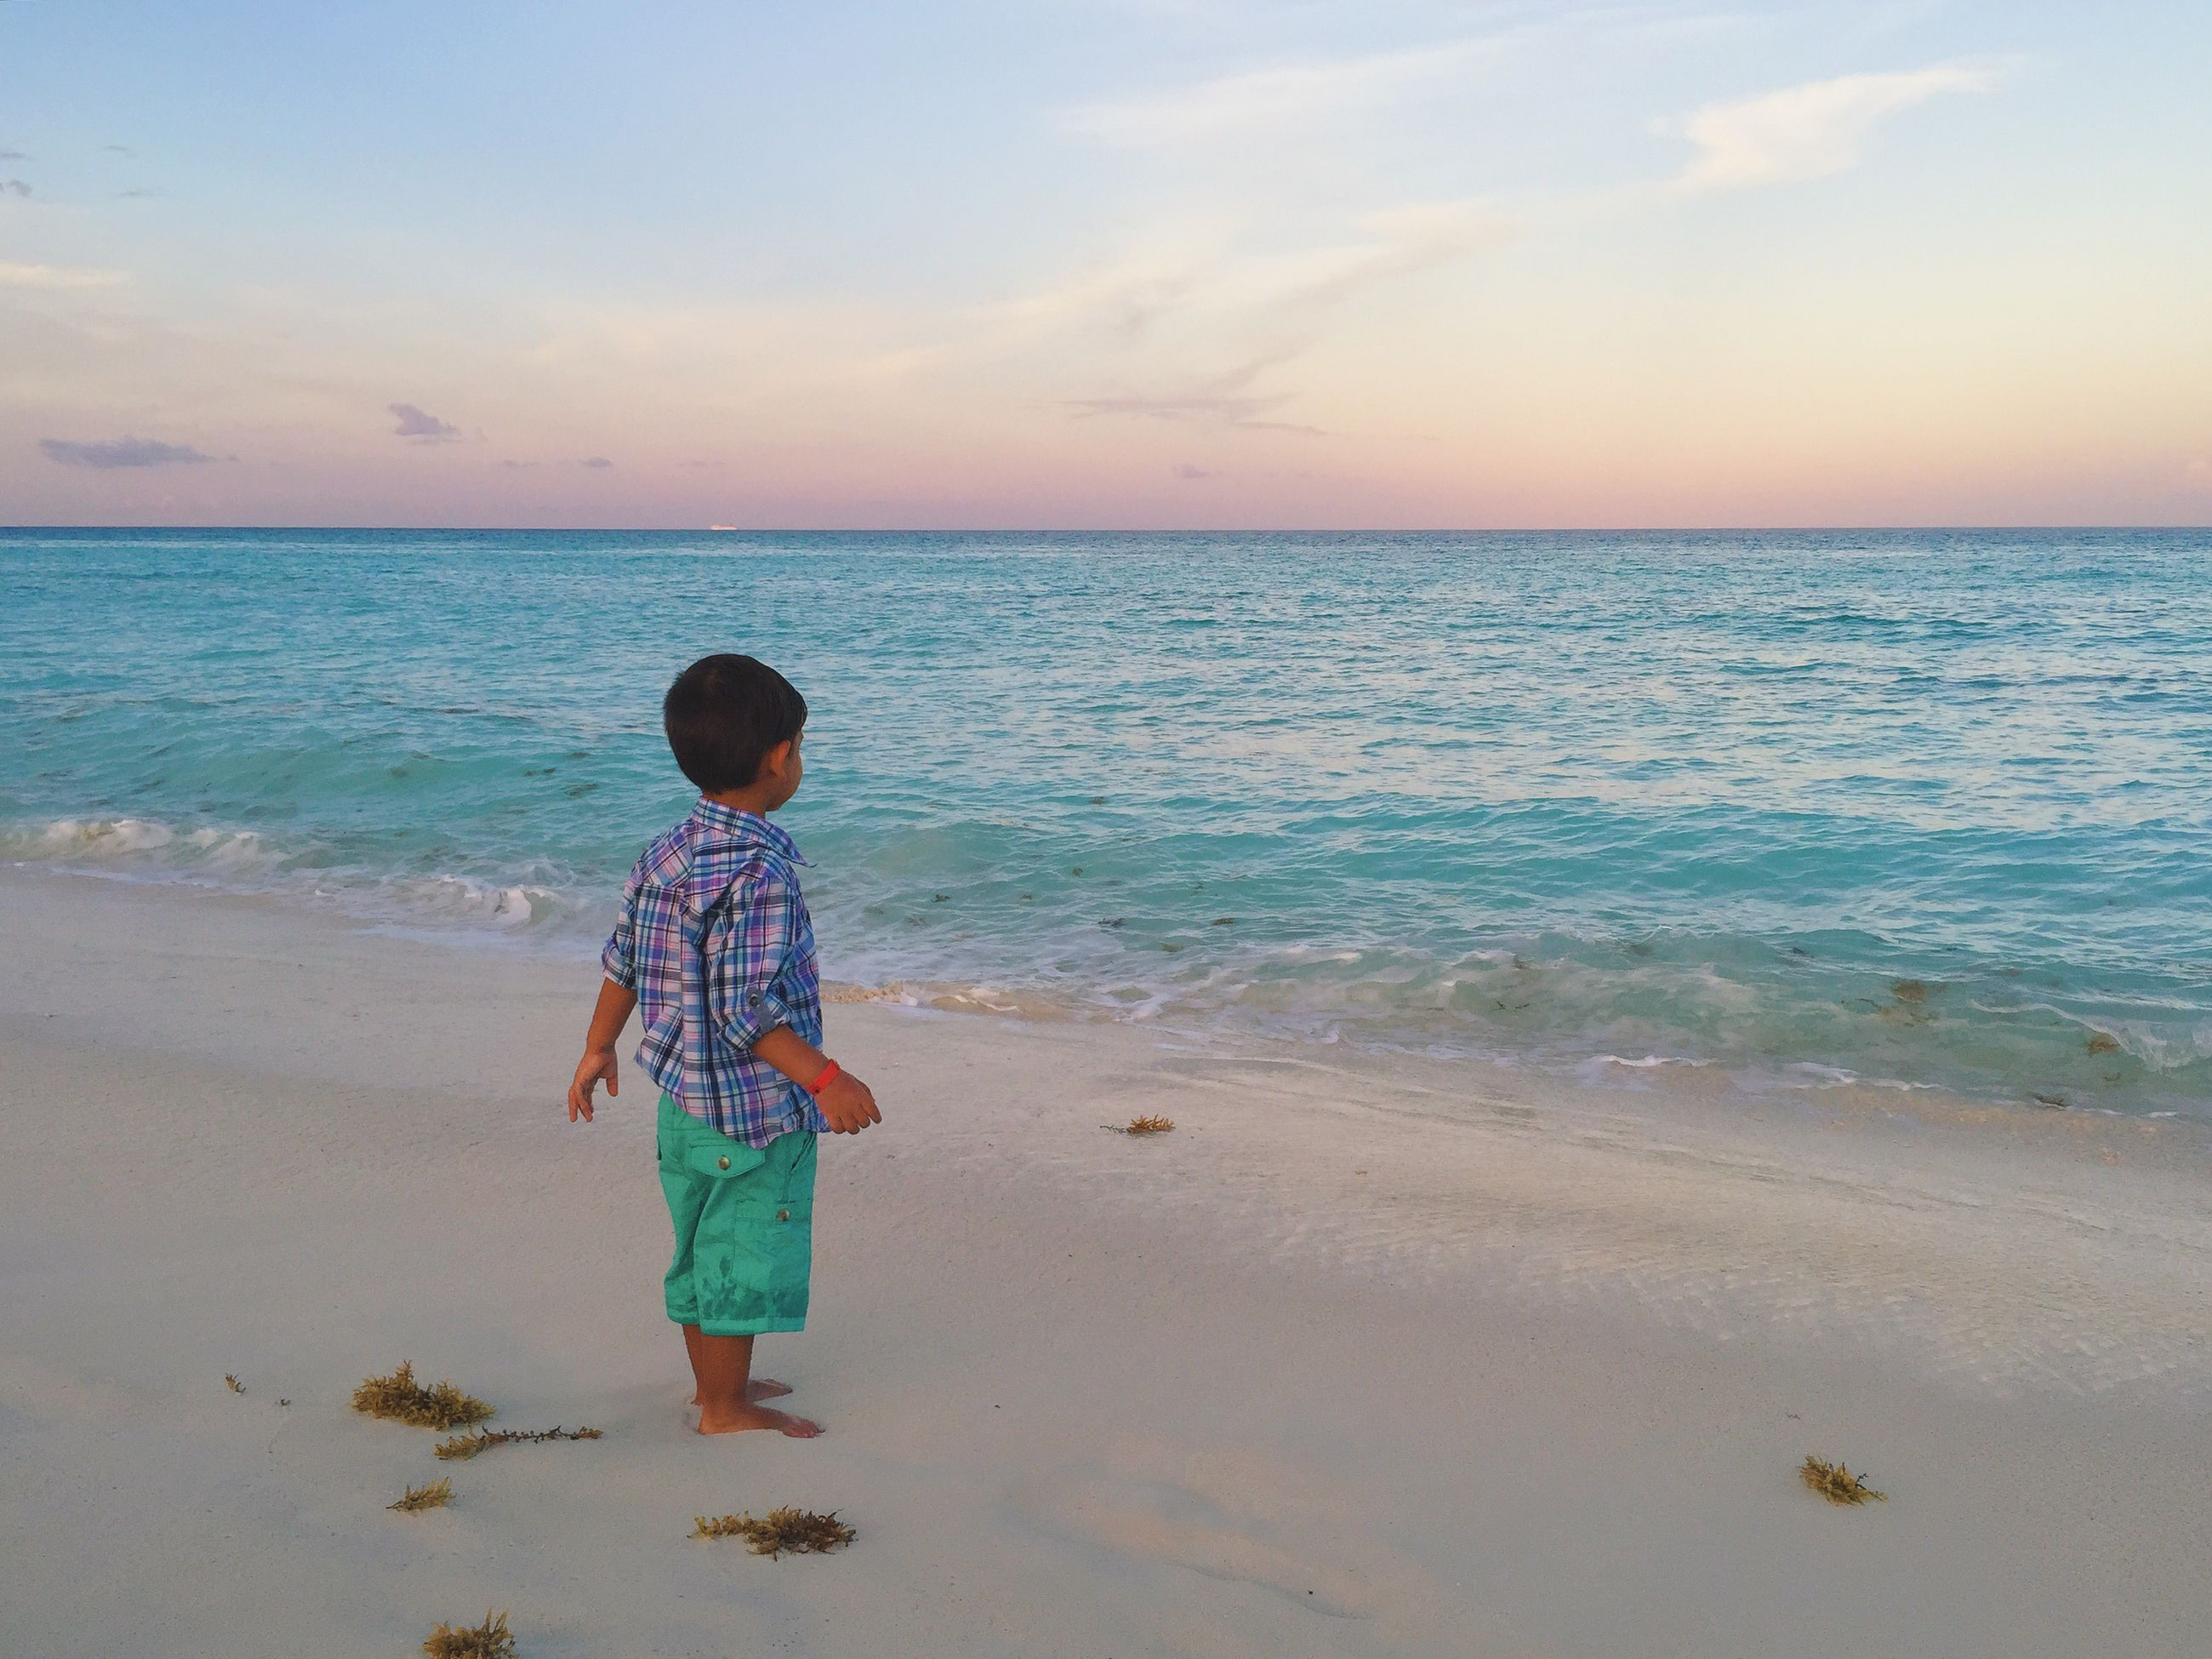 beach, sea, water, horizon over water, full length, shore, childhood, lifestyles, leisure activity, sand, sky, boys, casual clothing, elementary age, girls, rear view, vacations, beauty in nature